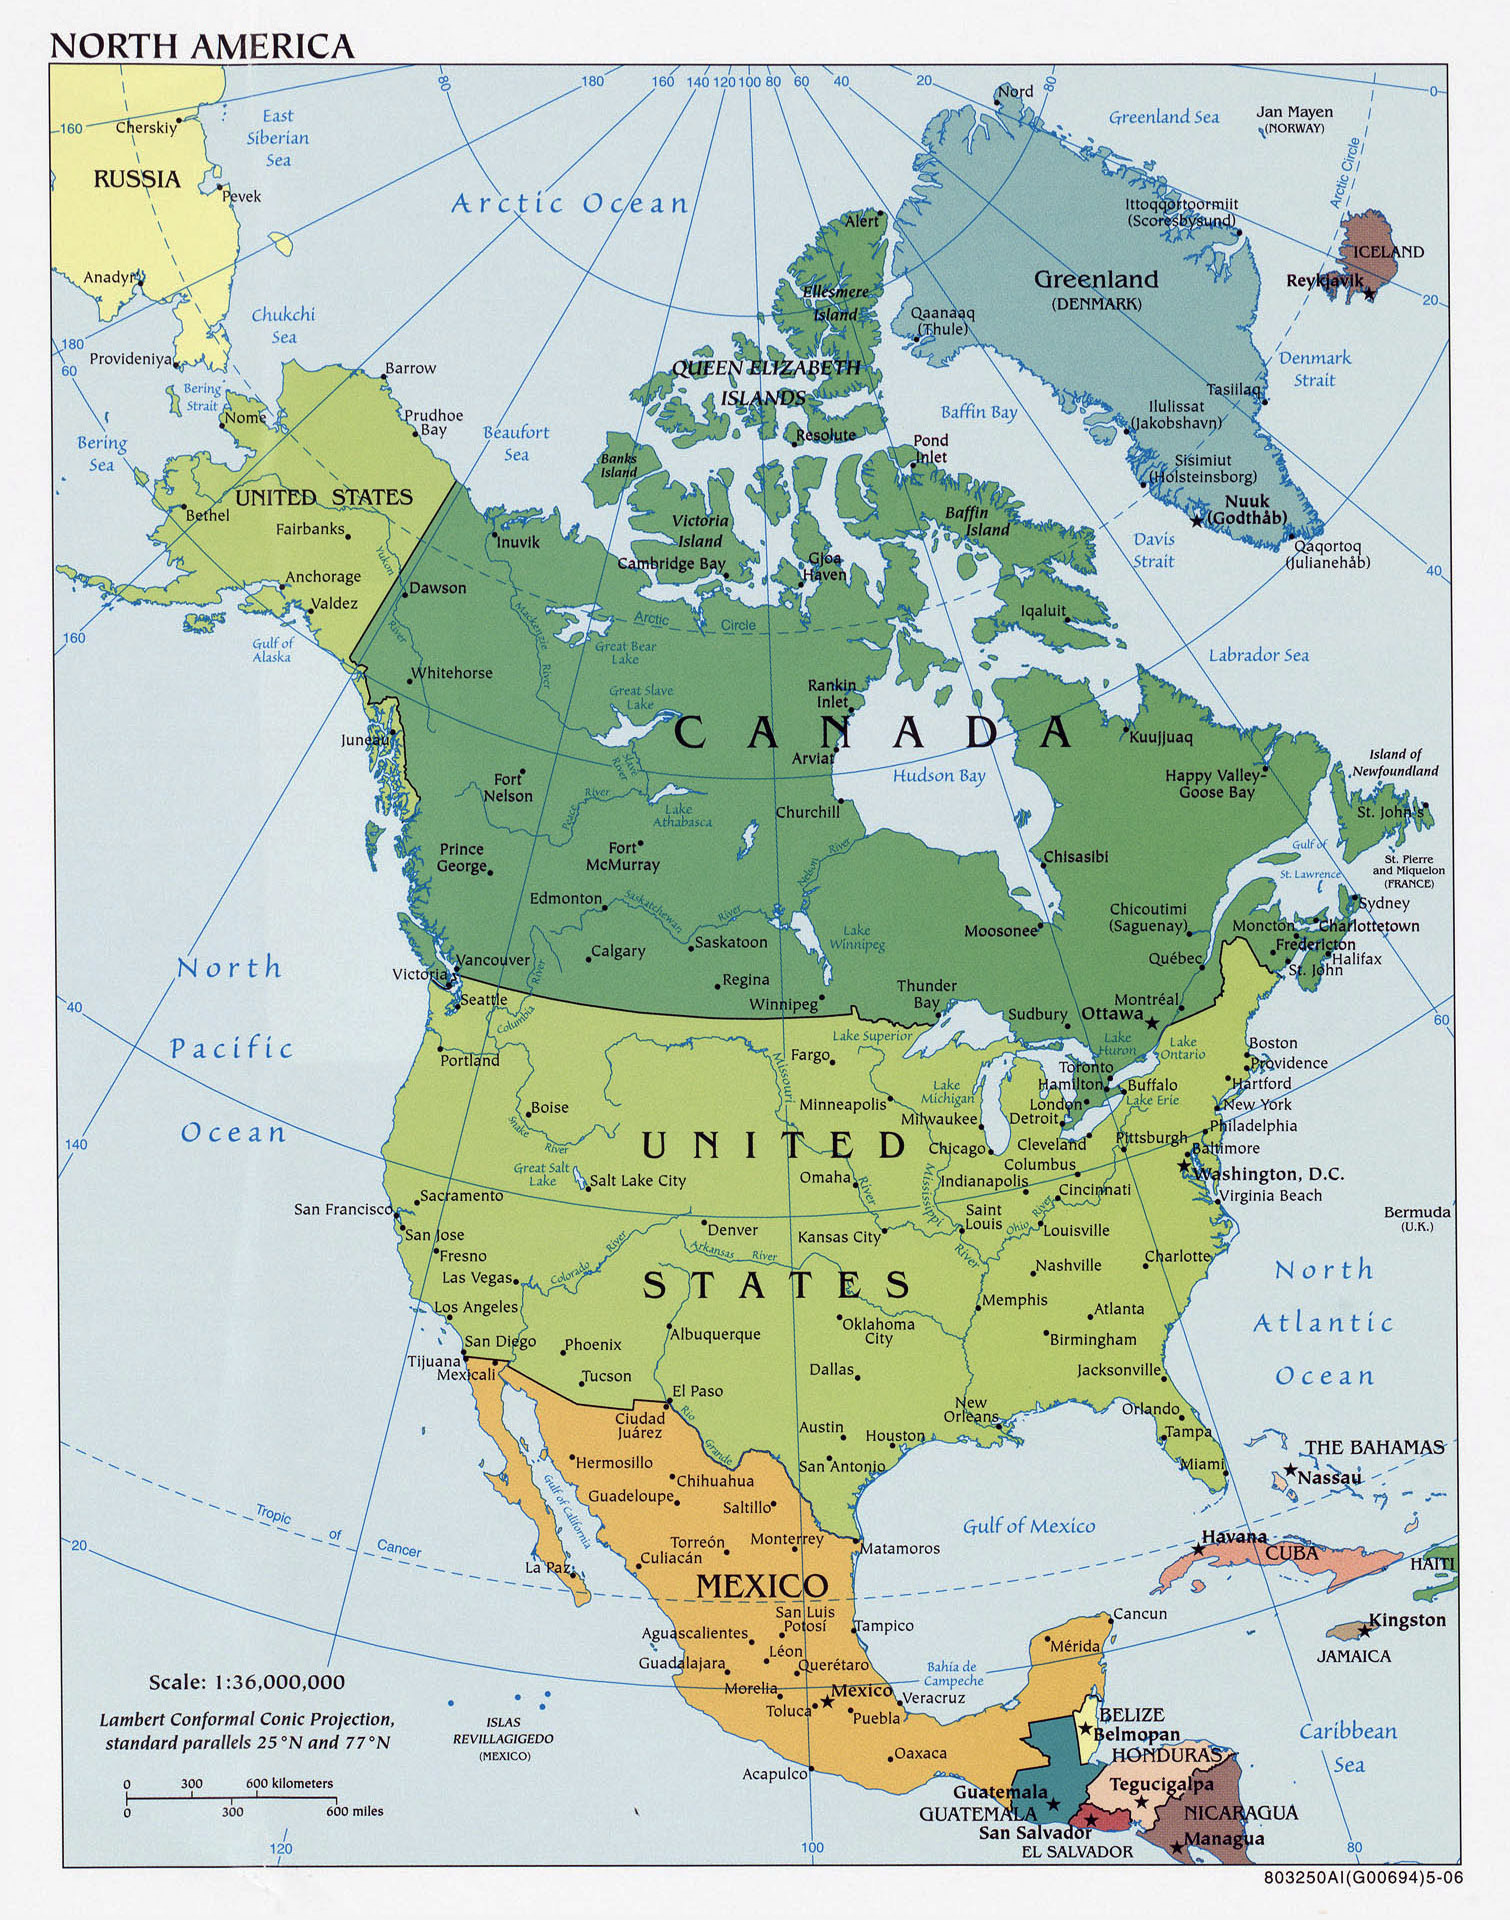 Image of: Large Detailed Political Map Of North America With Major Cities 2006 North America Mapsland Maps Of The World